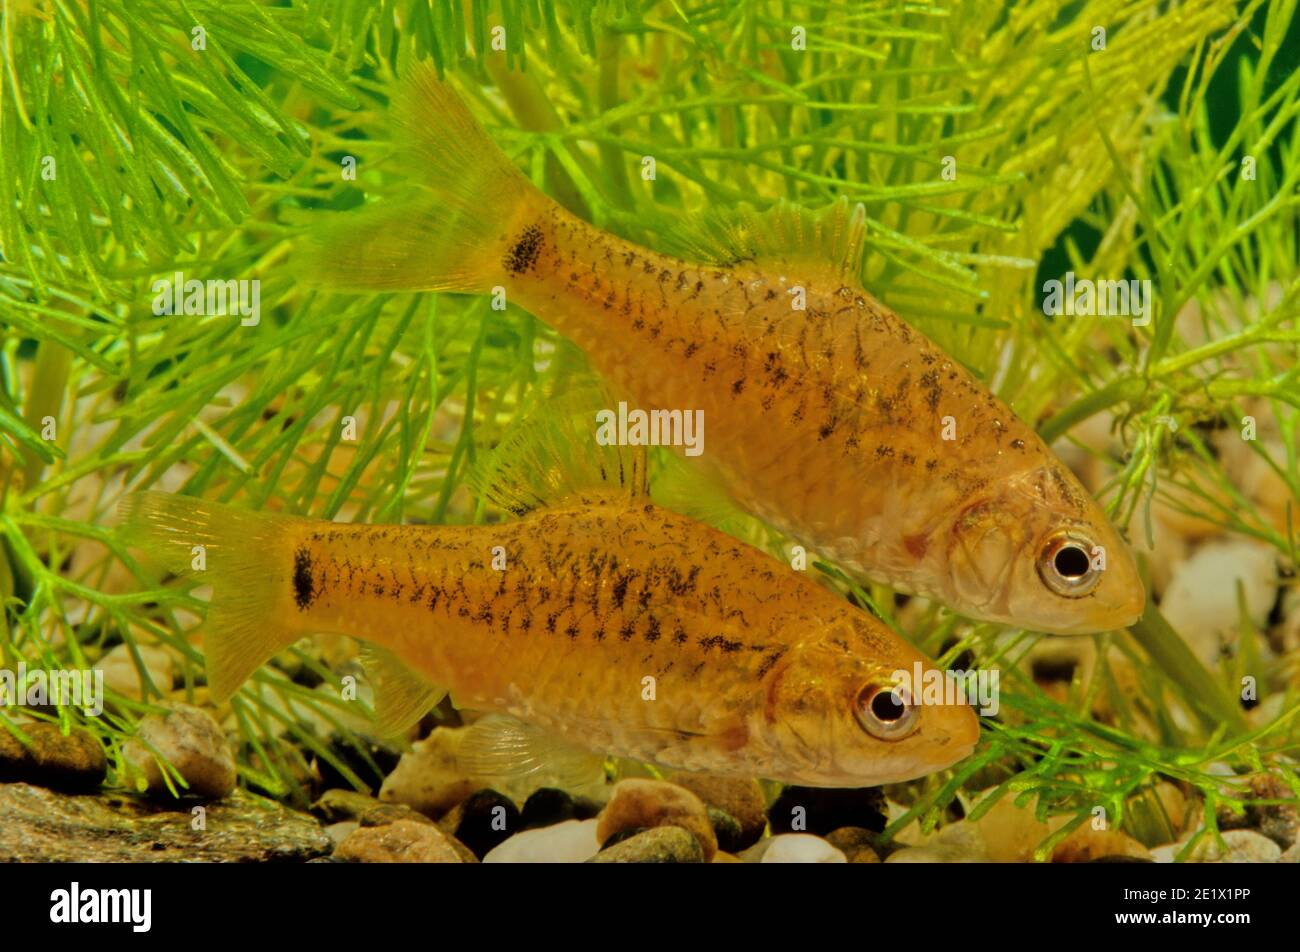 Barbodes semifasciolatus, the Chinese barb, is a species of cyprinid fish native to the Red River basin in southeast Asia where they occur in fresh wa Stock Photo